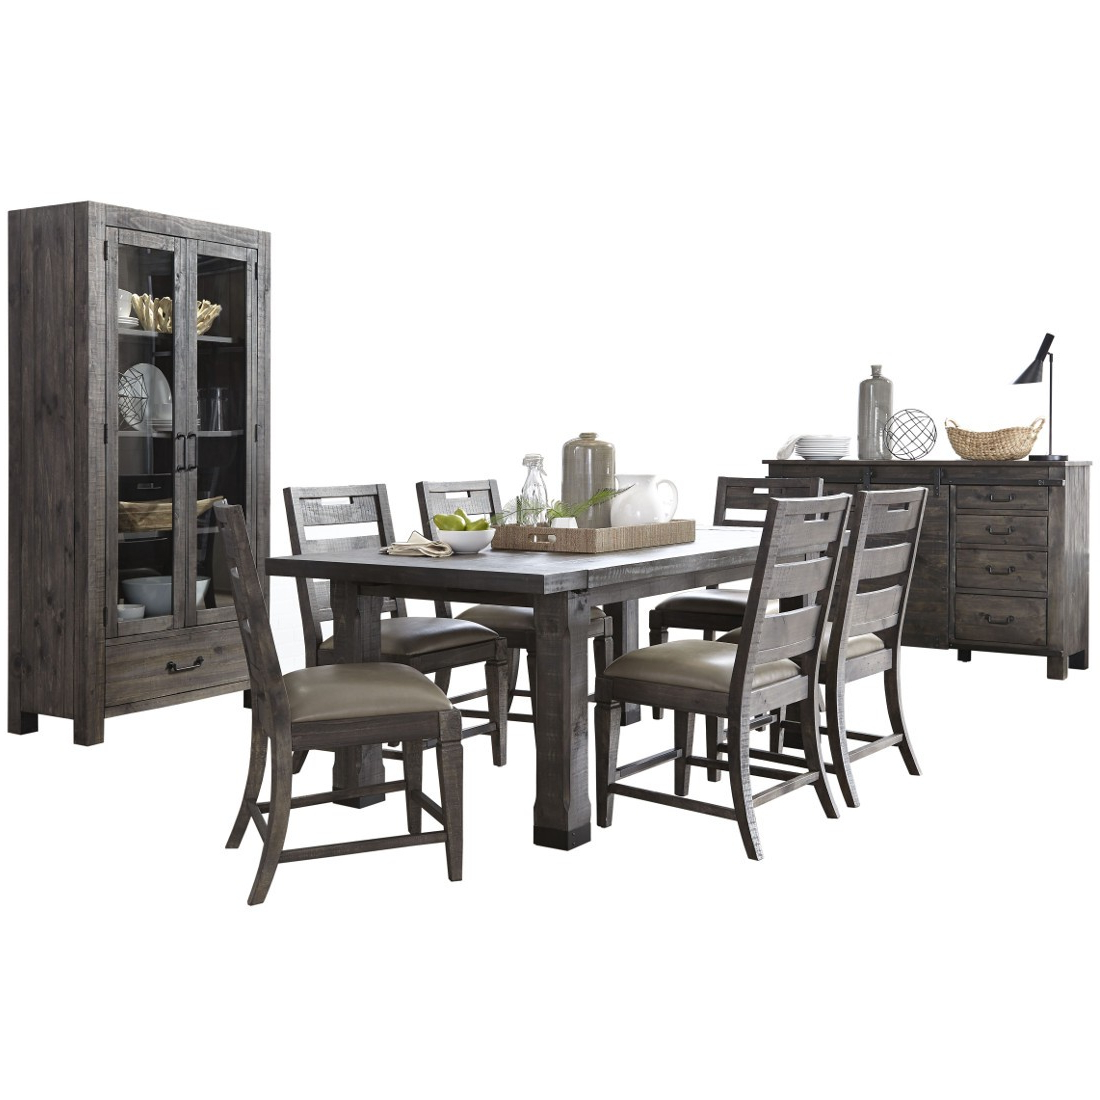 Charcoal Transitional 6 Seating Rectangular Dining Tables In Latest Magnussen Abington Rectangular Dining Table Set In Weathered Charcoal (View 6 of 25)